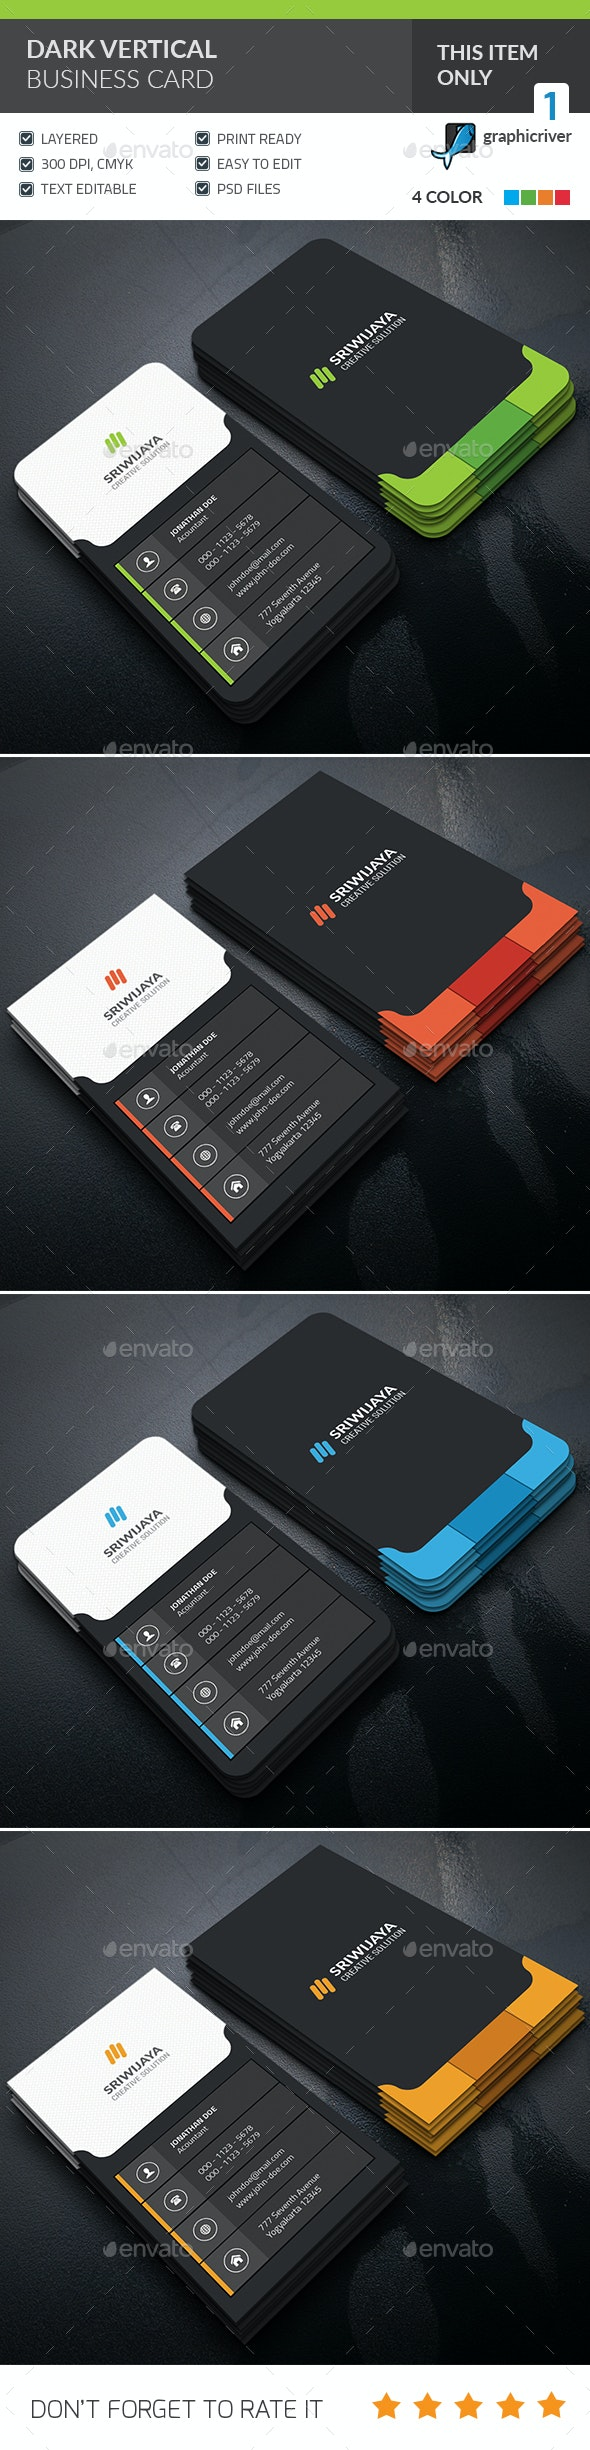 Dark Vertical Business Card  - Corporate Business Cards